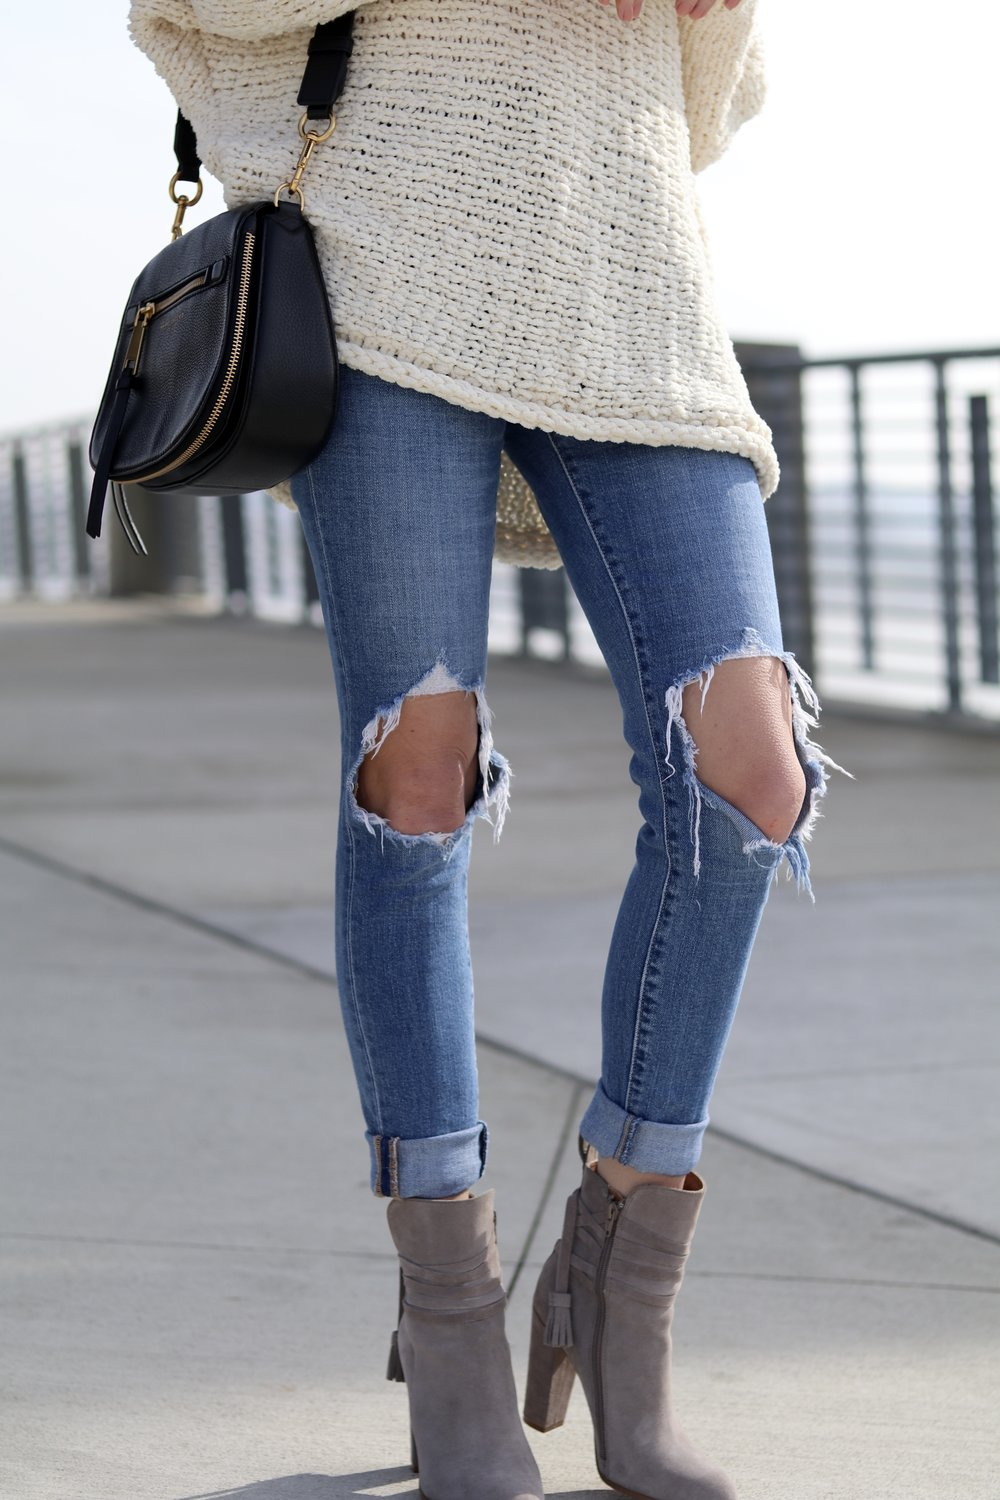 gilt edge | free people knit